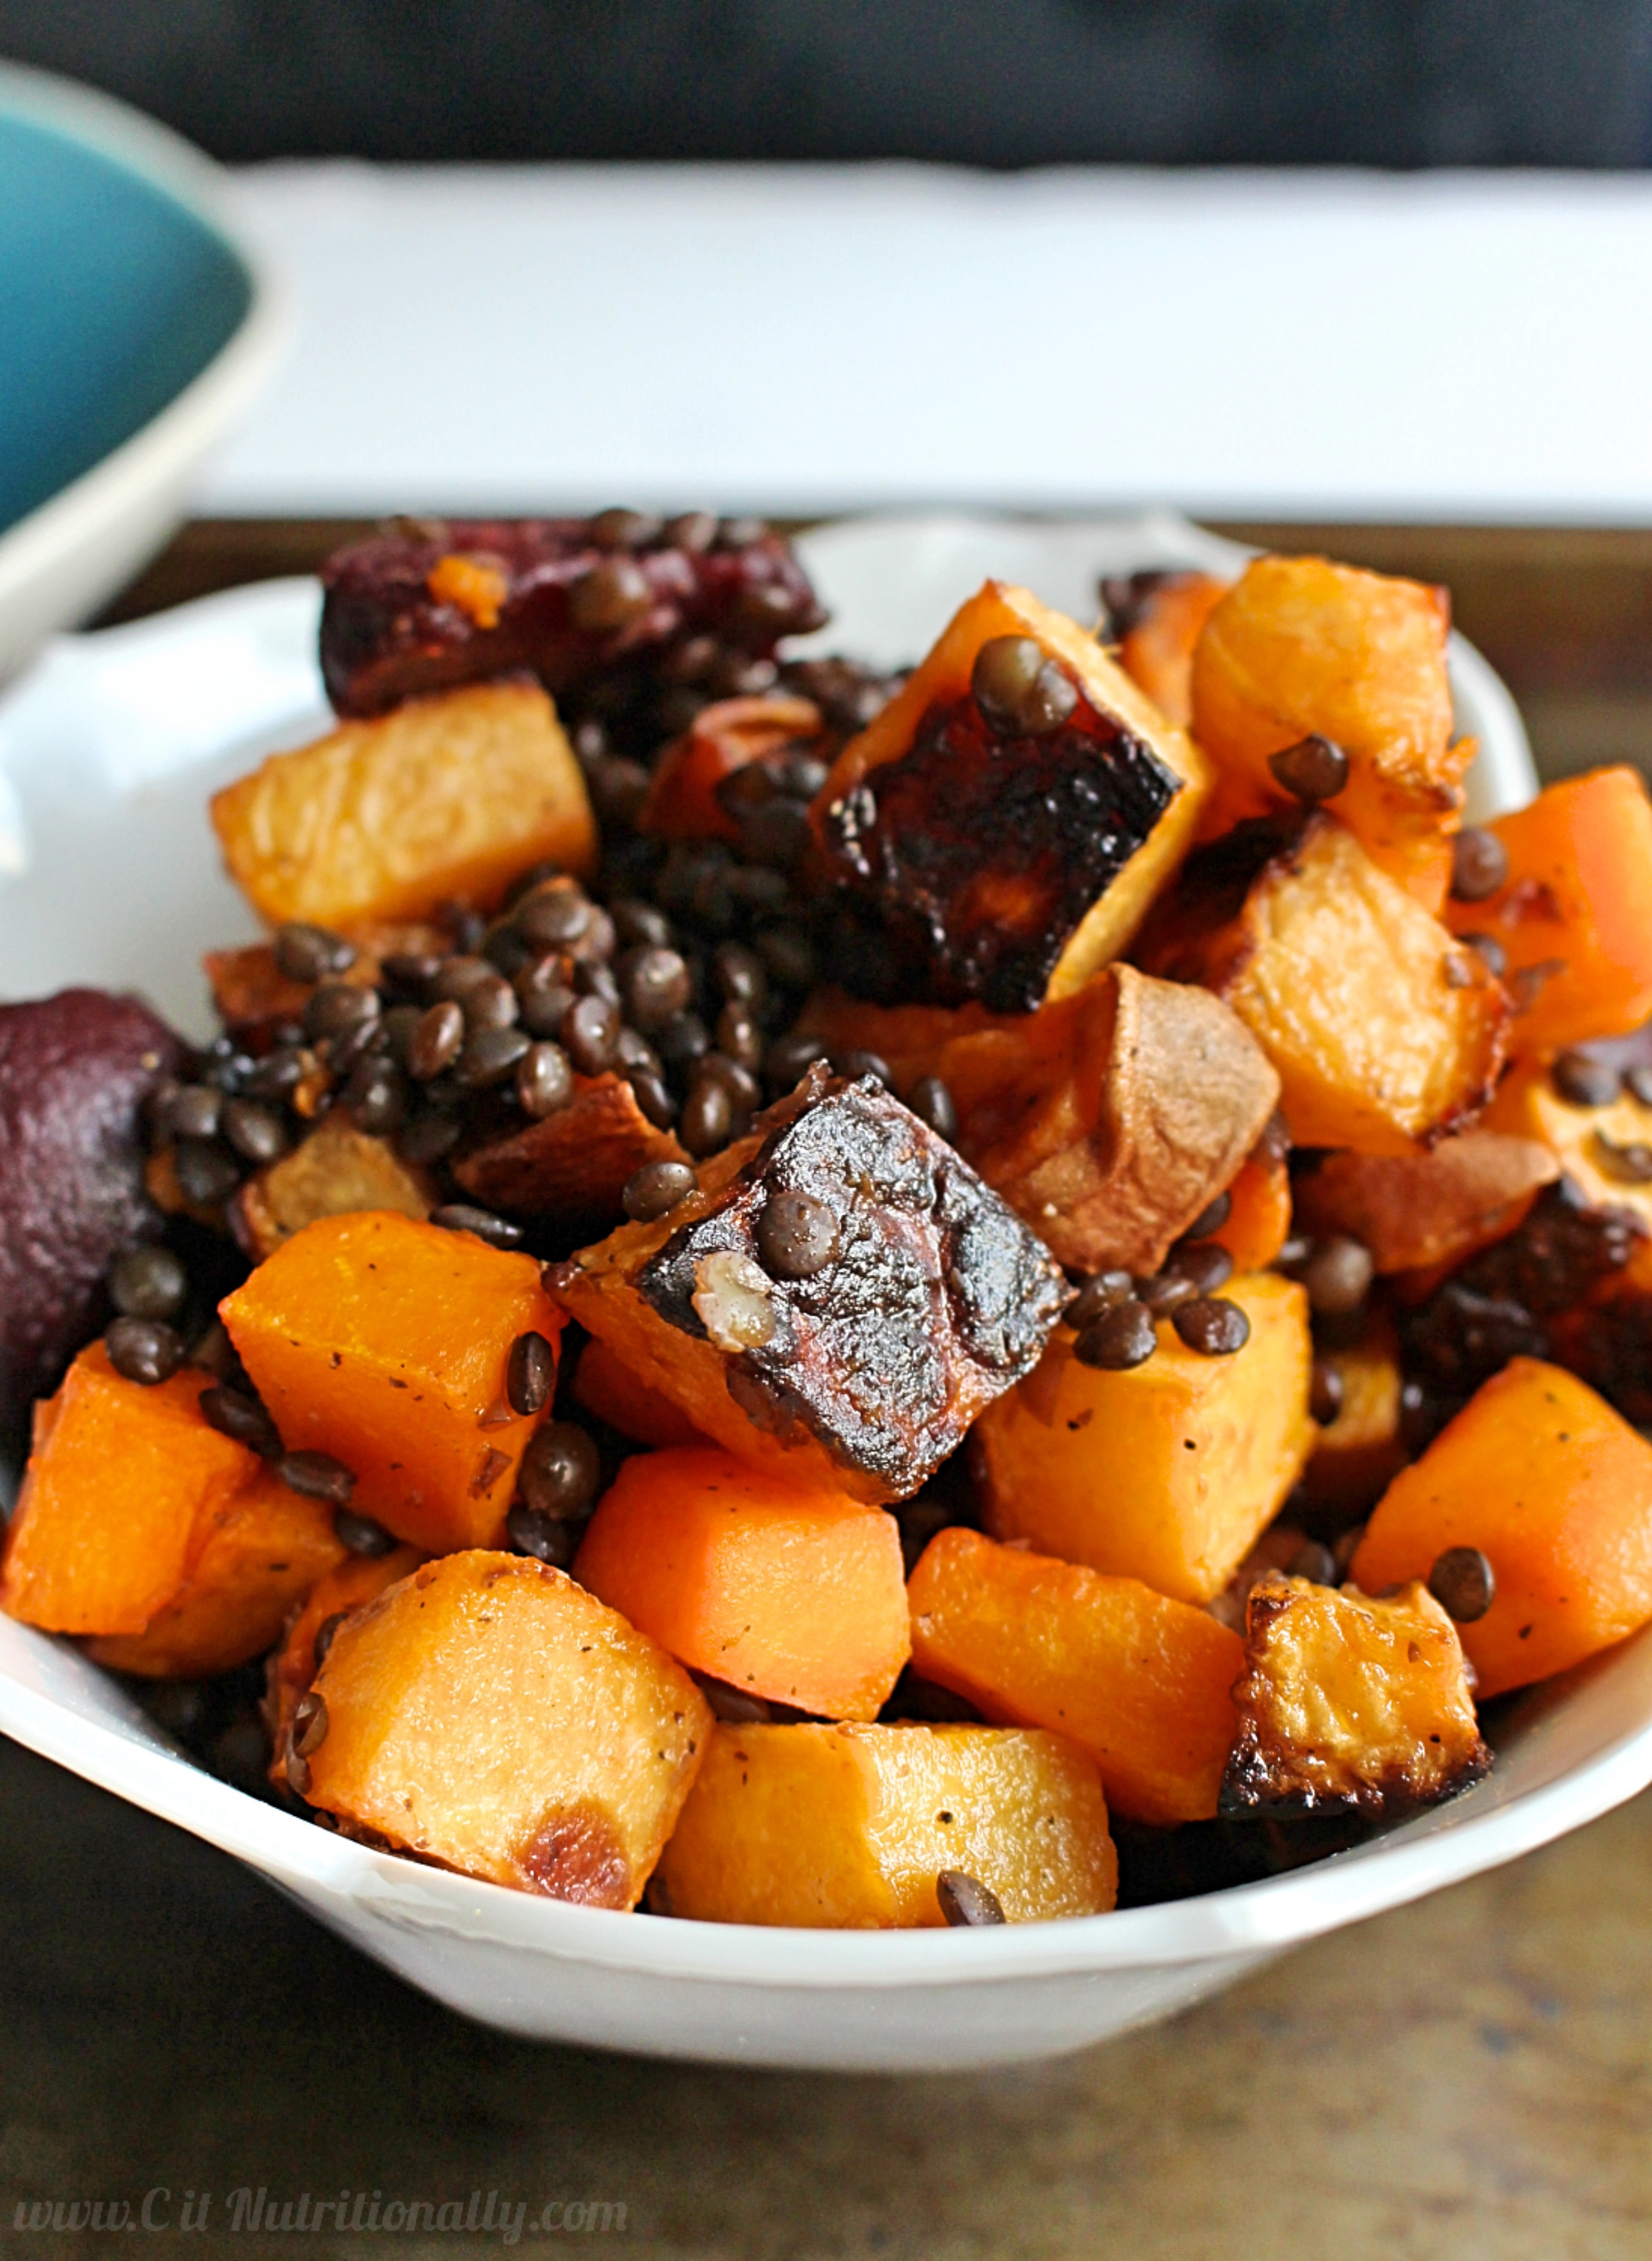 Warm Black Lentil and Root Vegetable Salad | C it Nutritionally Top 8 Allergen Free. Nut free. Egg free. Dairy free. Gluten free.